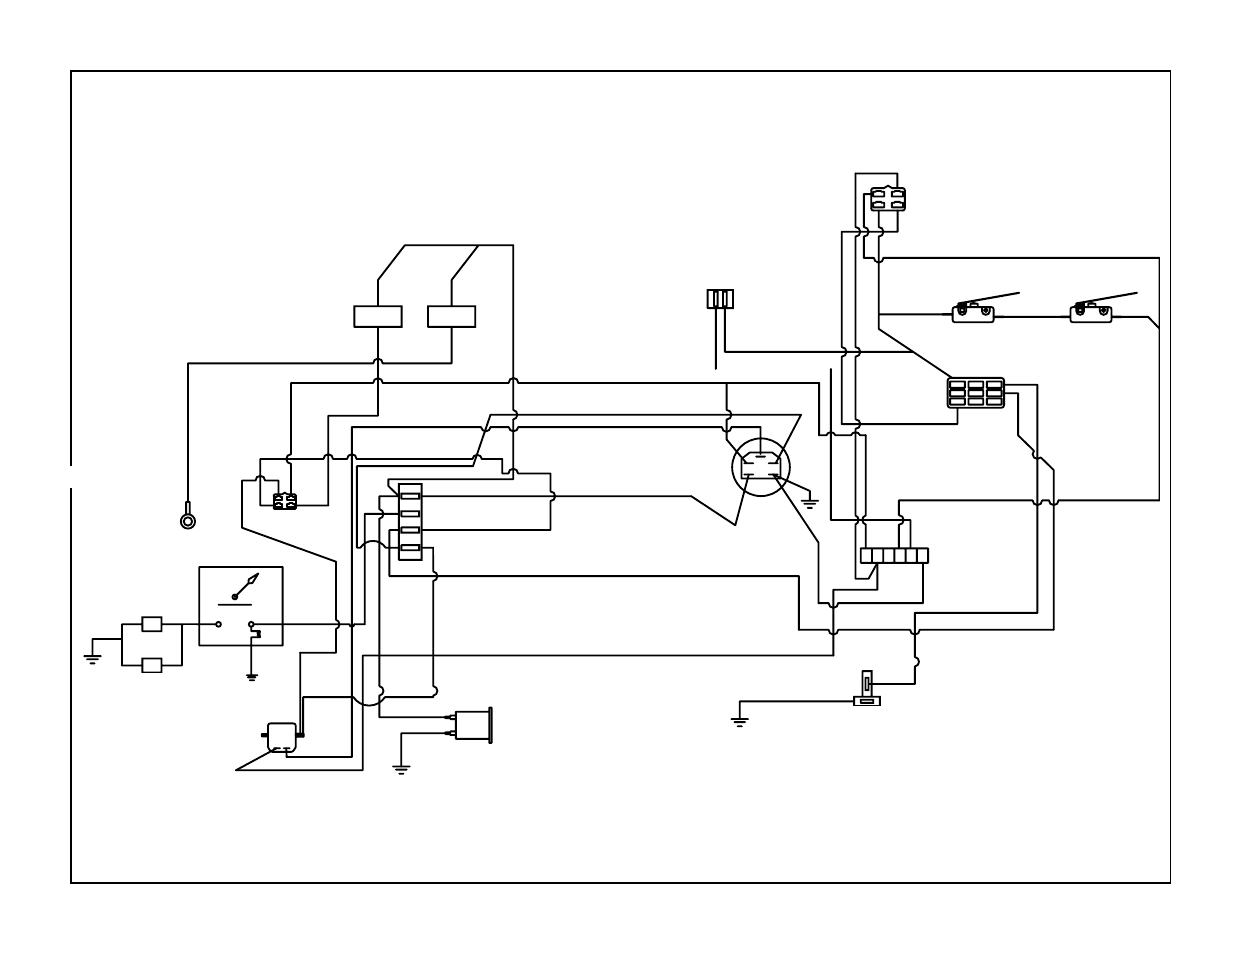 kohler wiring harness | bush hog zero turn mowers user ... bush hog es1744 wiring diagram